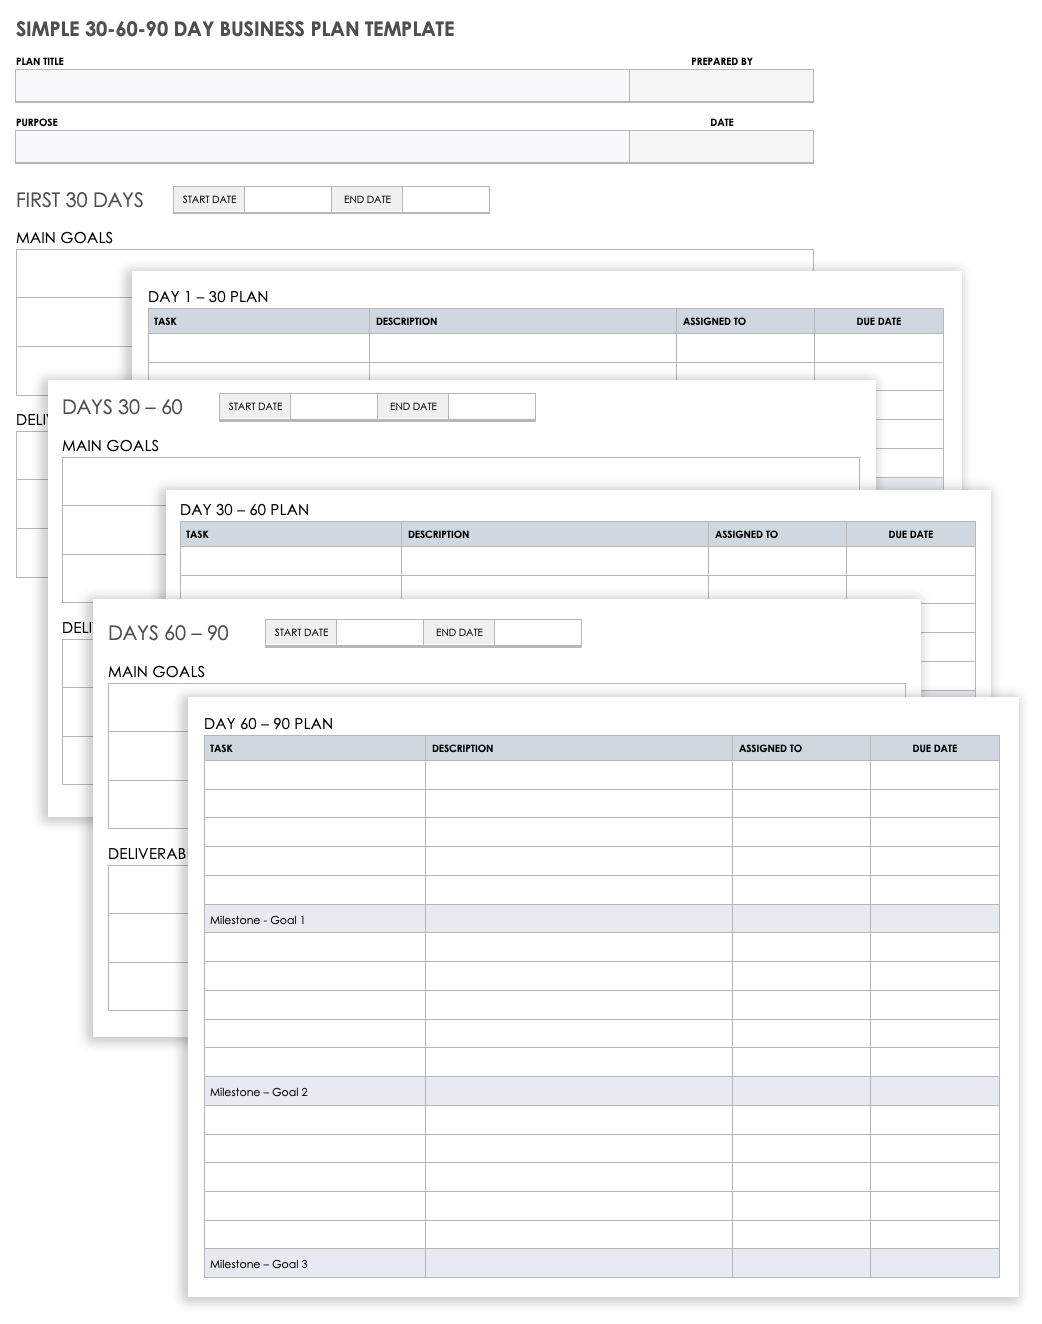 Free Business Plan Templates for Word | Smartsheet